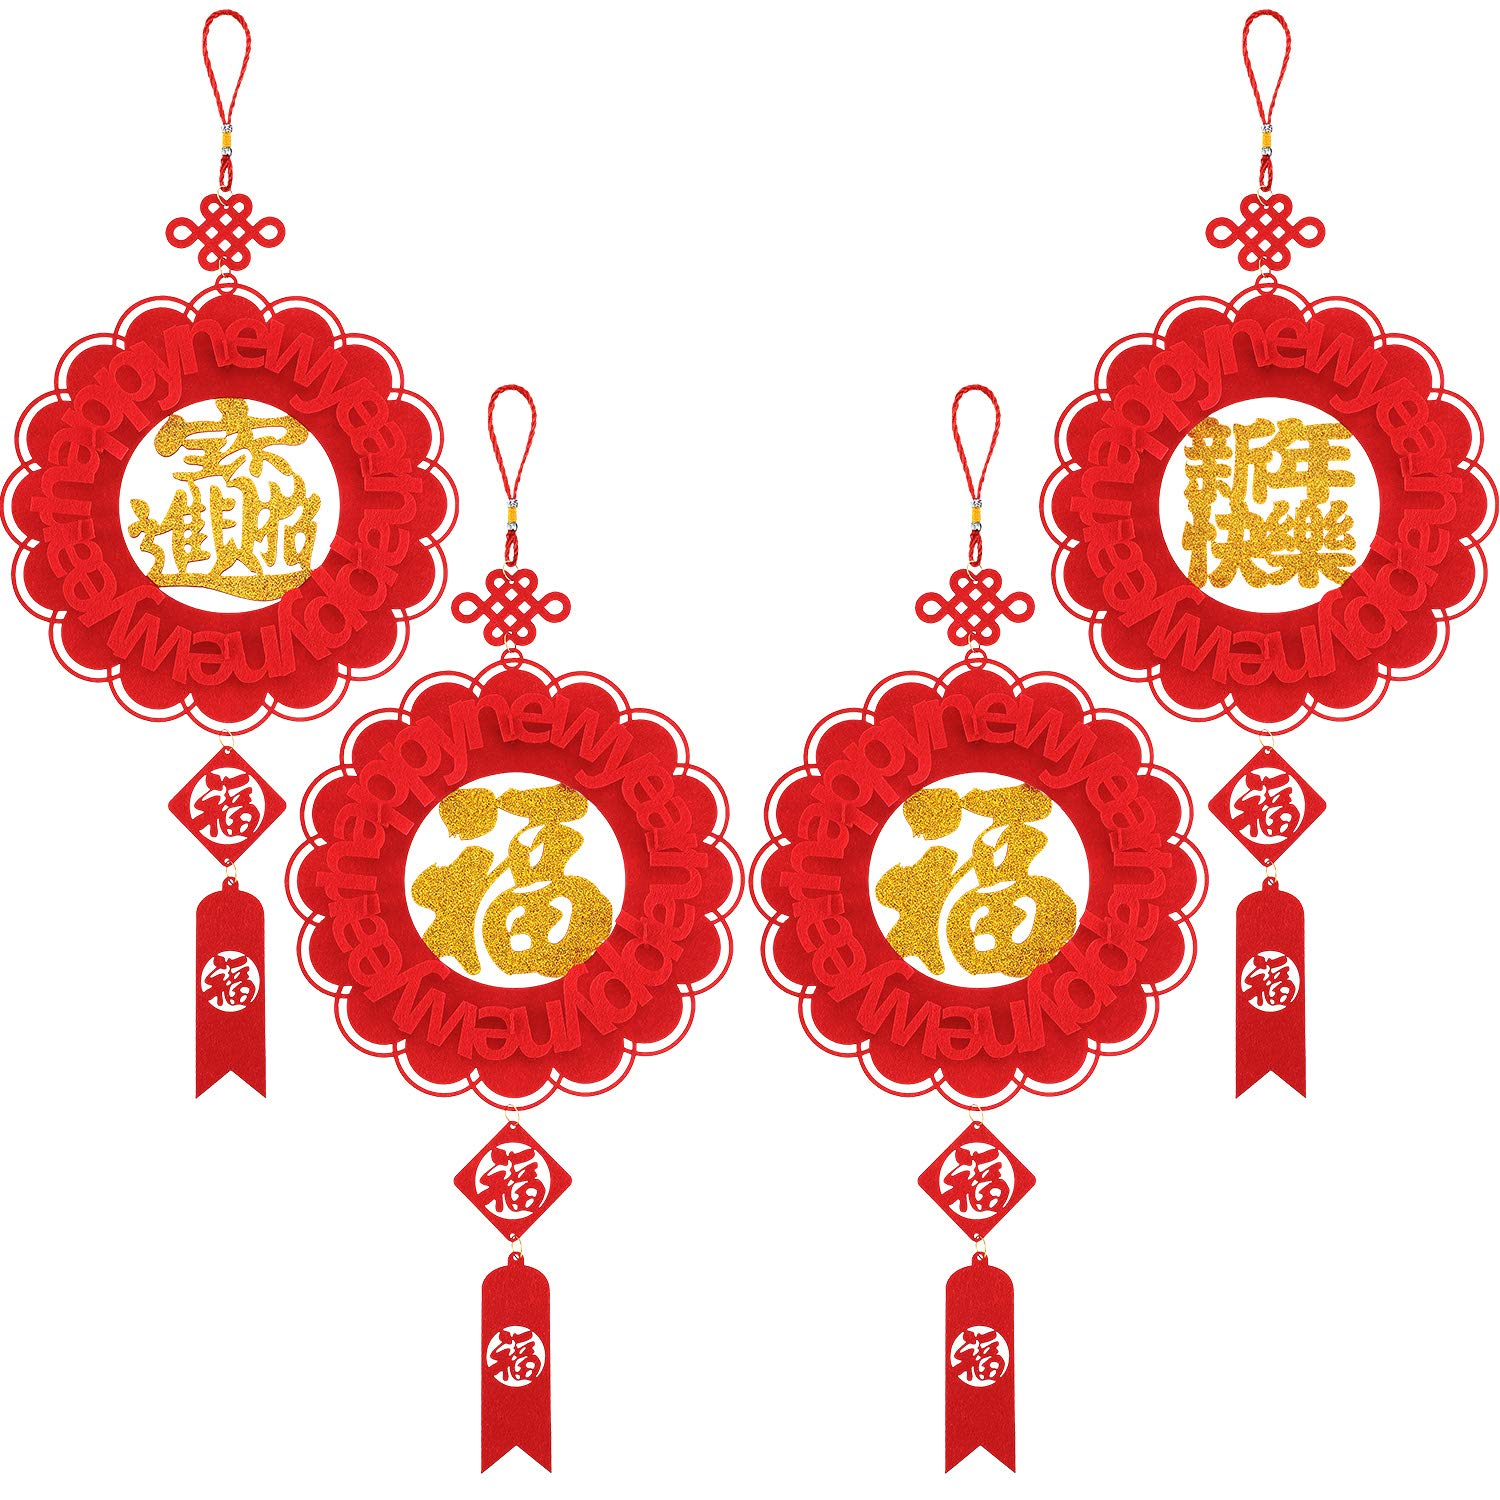 Boao 4 Pieces Fu Chinese Spring Festival Home Decor Chinese Knot Tassel Wall Hanging Decoration Chinese New Year Decoration for New Year Home Restaurant Office Decor